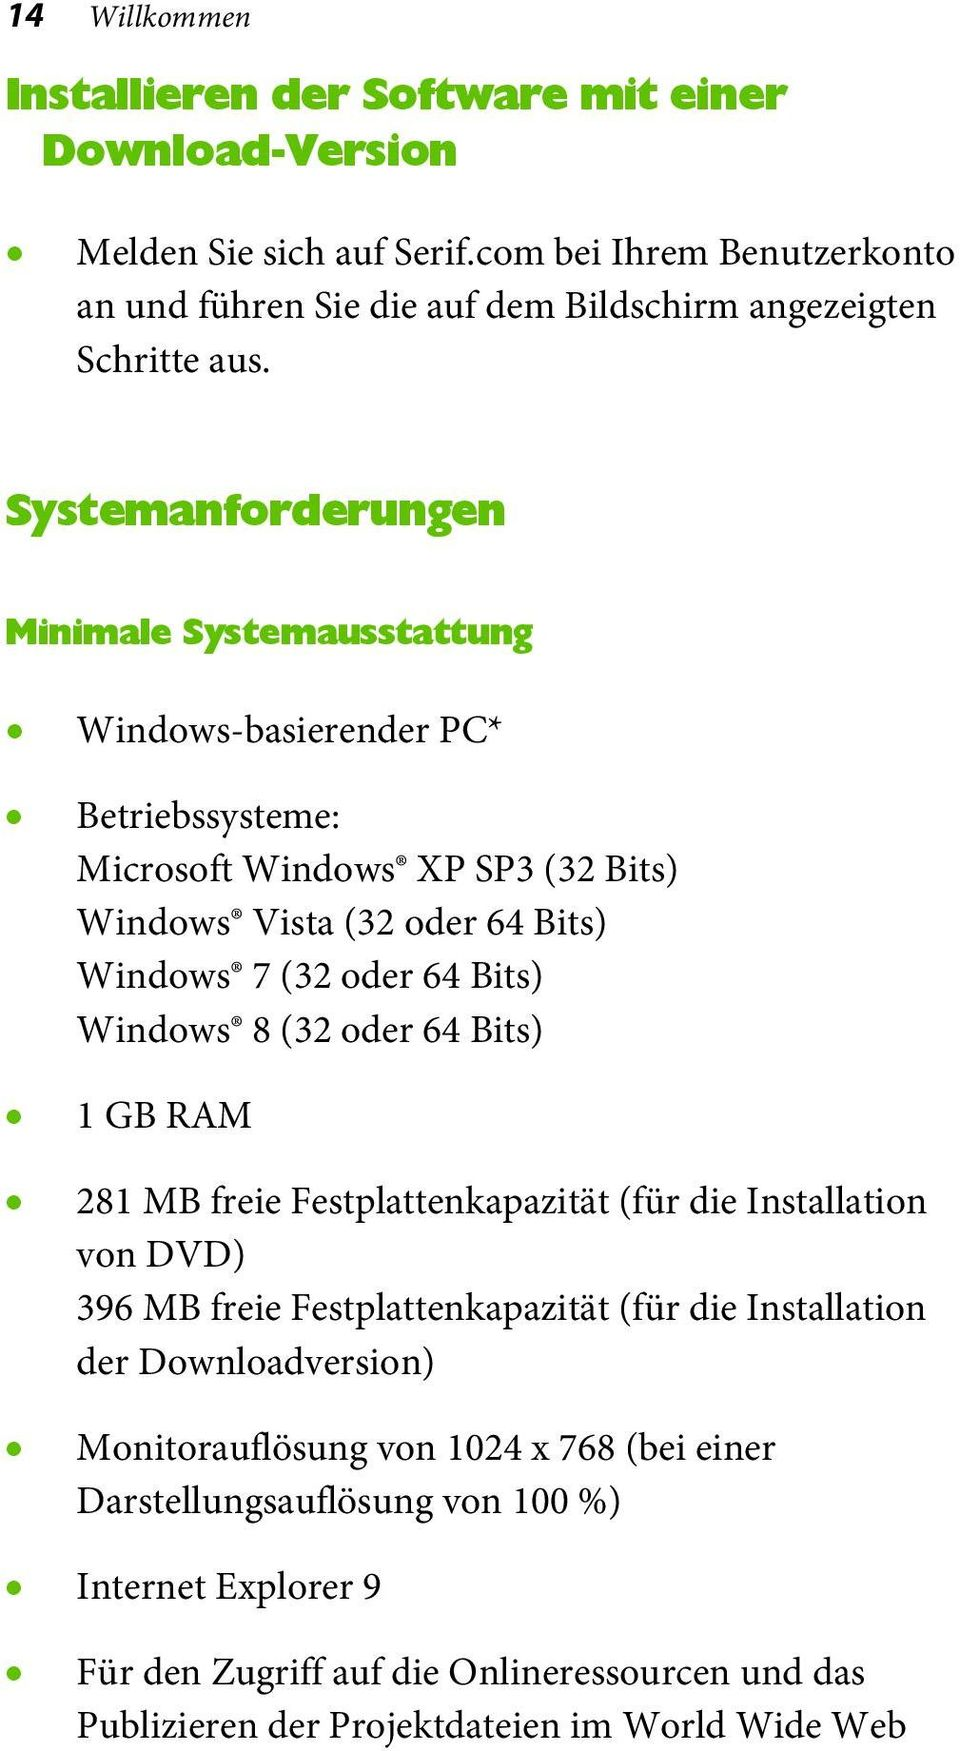 Systemanforderungen Minimale Systemausstattung Windows-basierender PC* Betriebssysteme: Microsoft Windows XP SP3 (32 Bits) Windows Vista (32 oder 64 Bits) Windows 7 (32 oder 64 Bits)